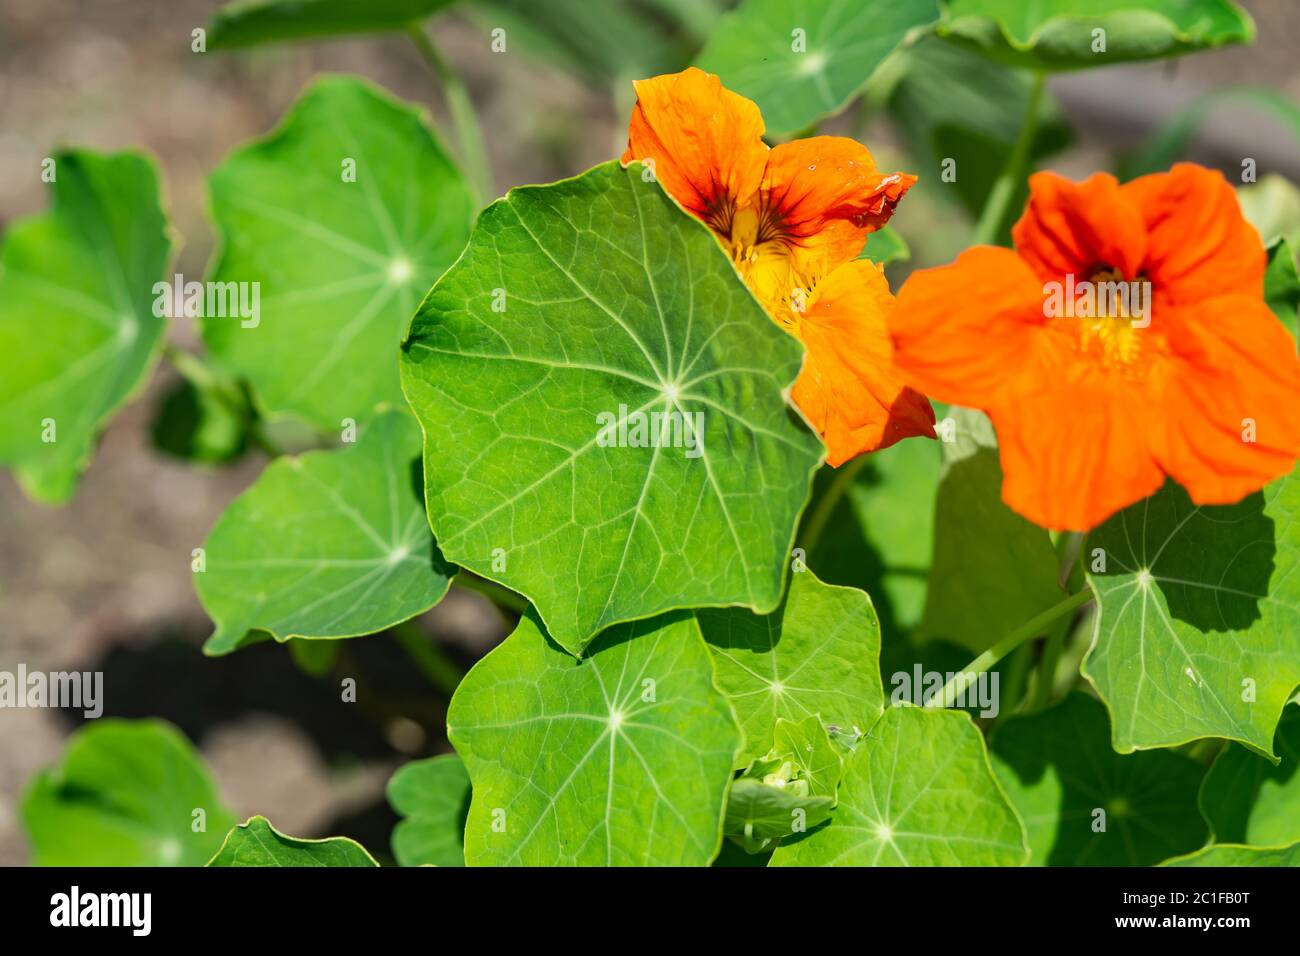 Nasturtium Leaves in Springtime Stock Photo